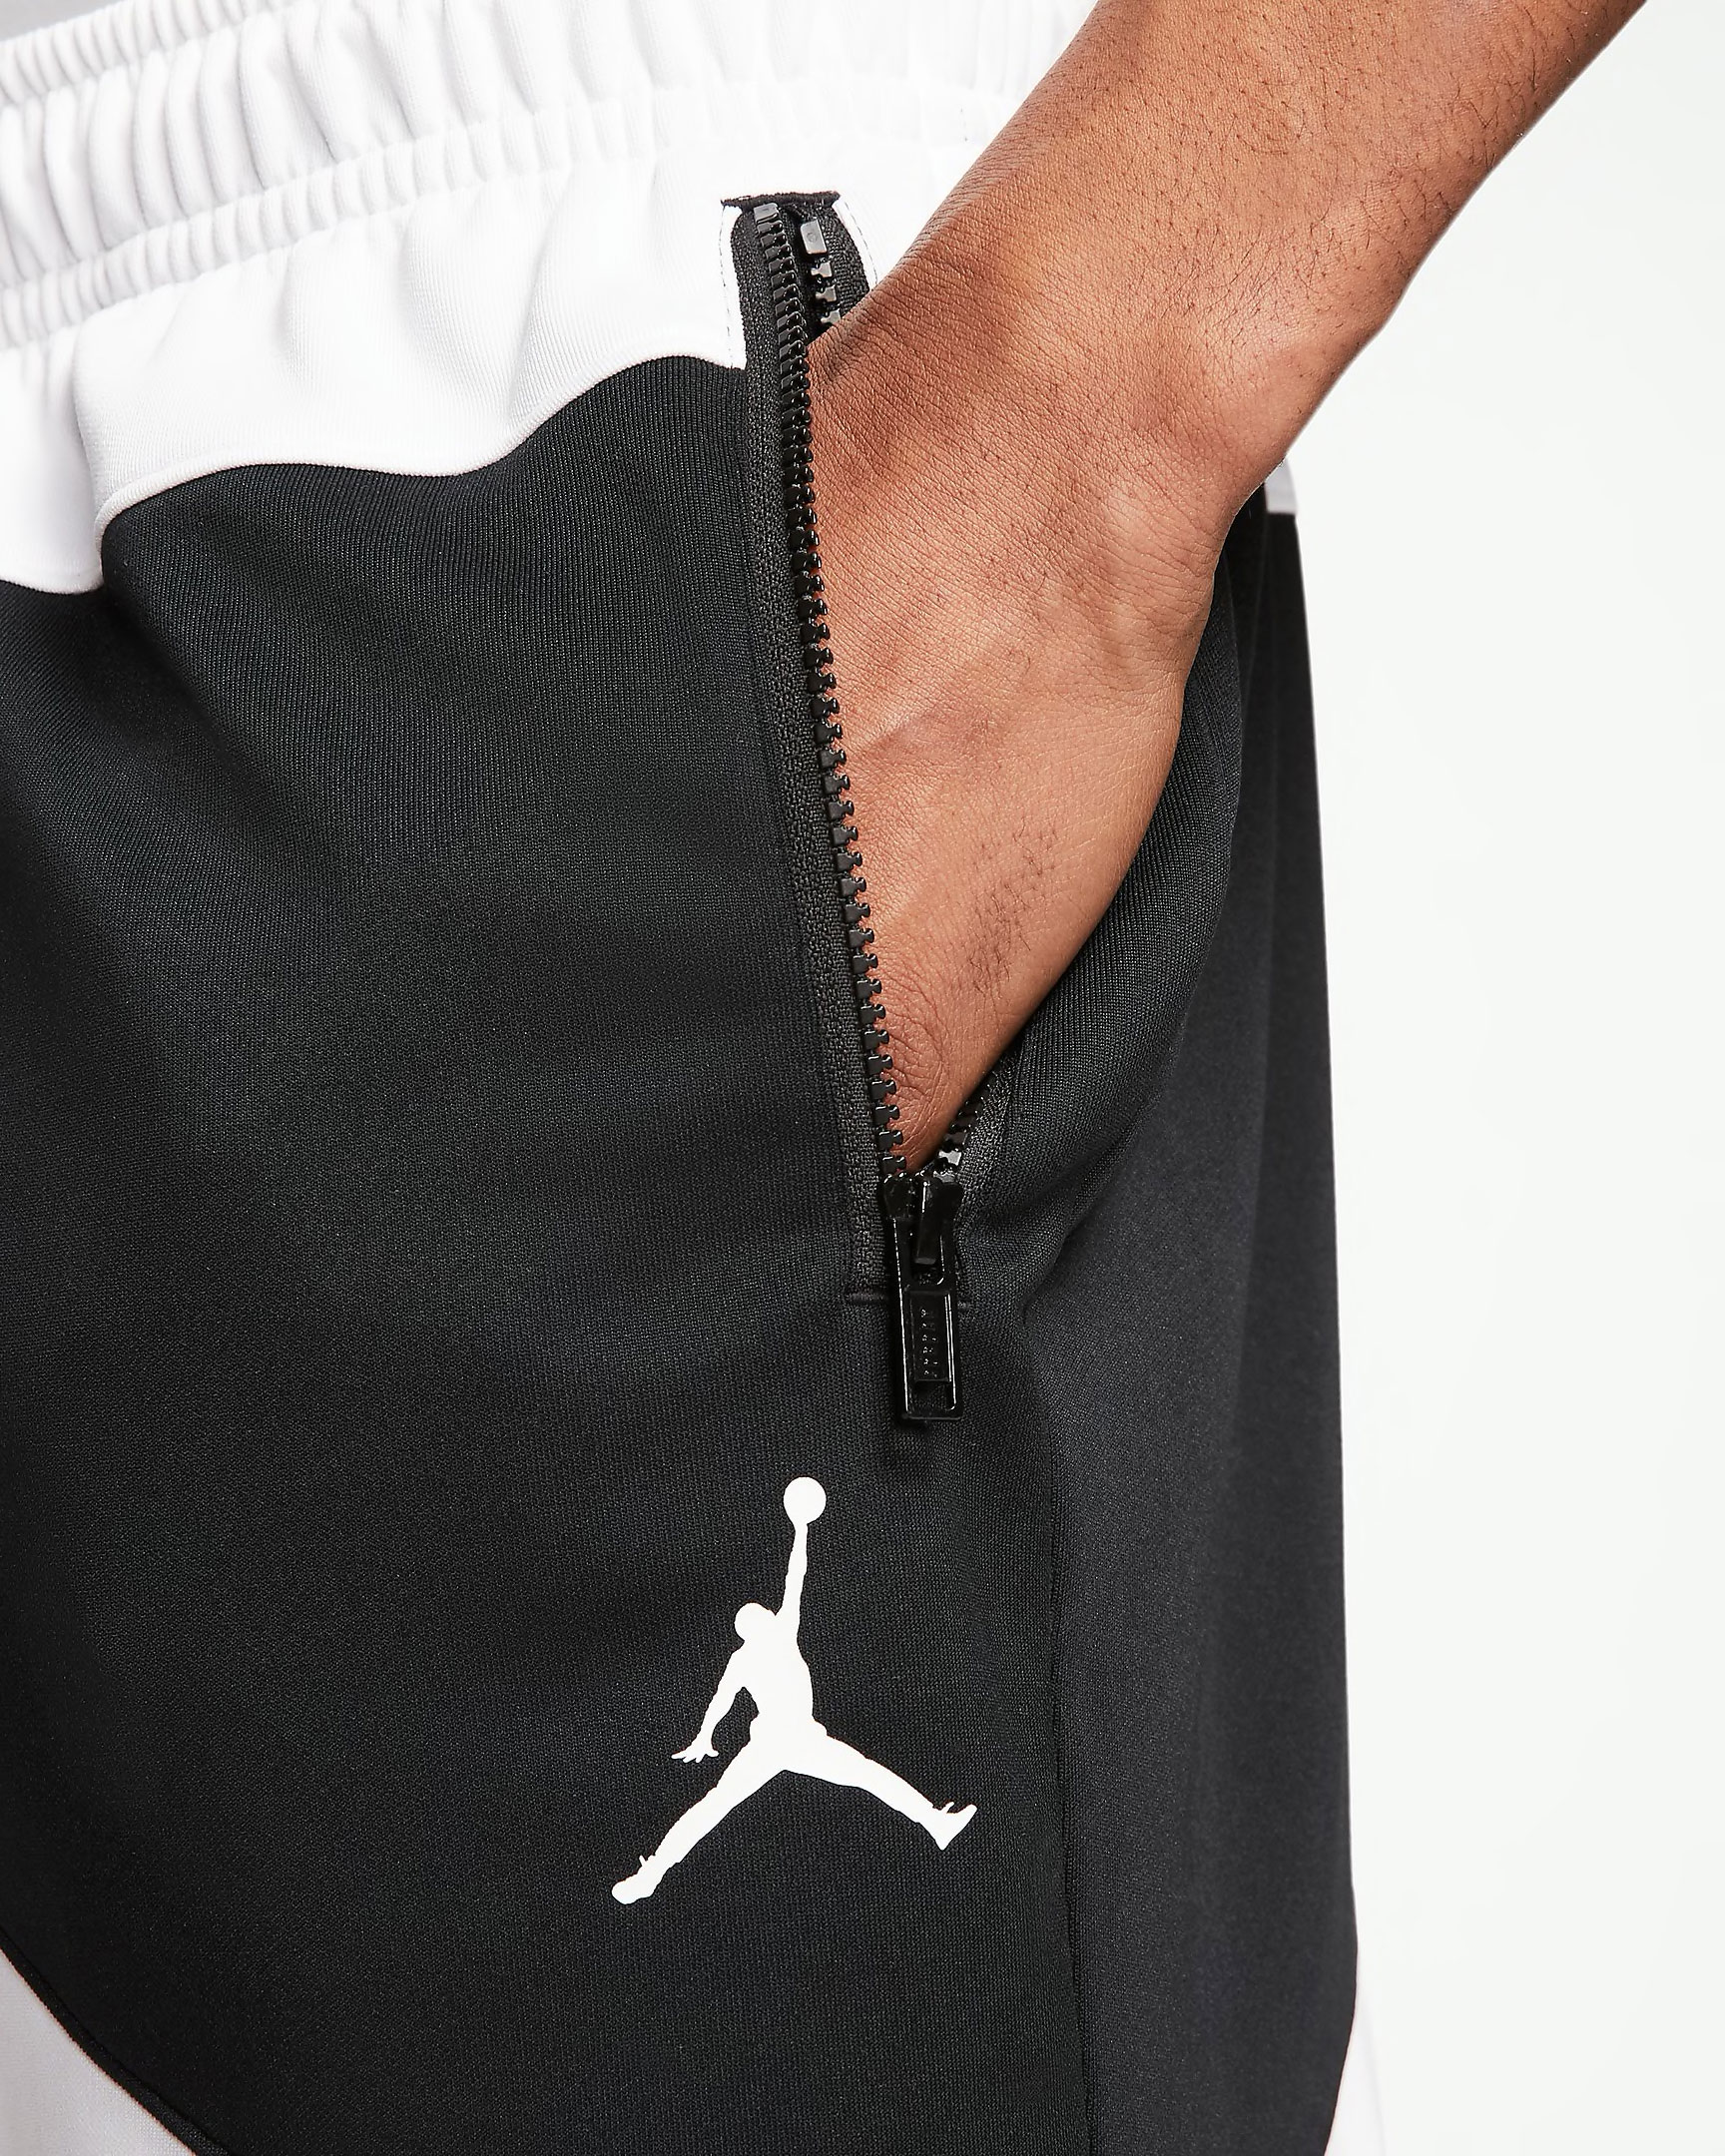 jordan-jumpman-wave-shorts-black-white-red-4